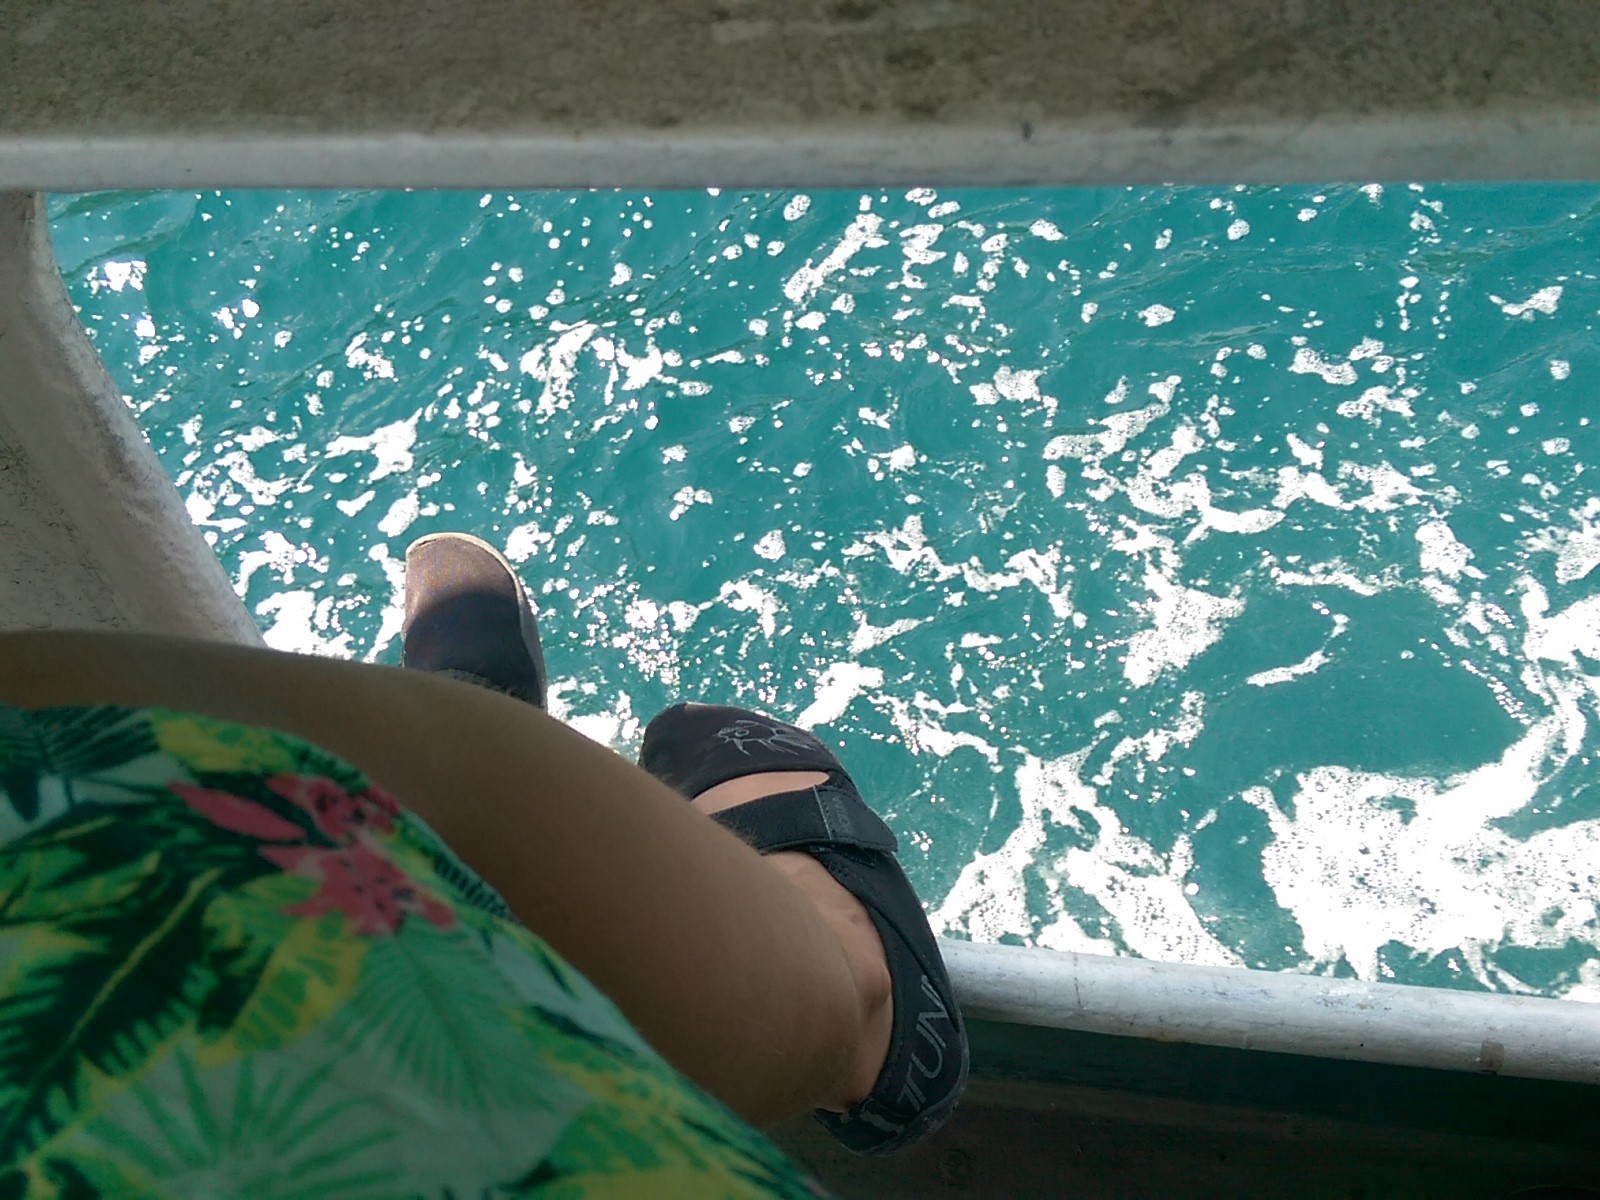 Looking down on bright blue foamy water, with the legs of a woman wearing a green skirt and black shoes